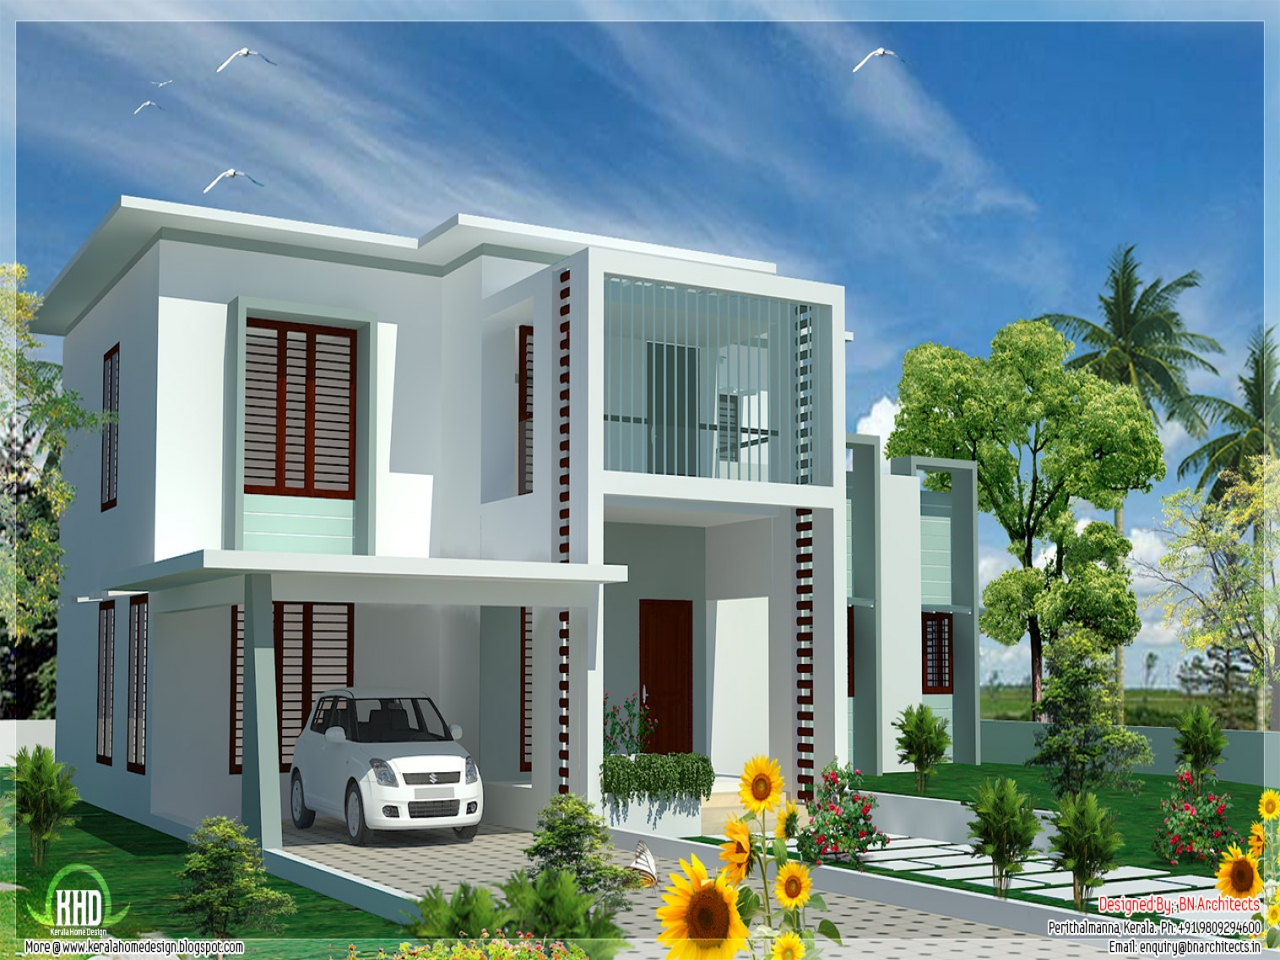 Flat Roof Homes Flat Roof Modern House Plans, two bedroom ...